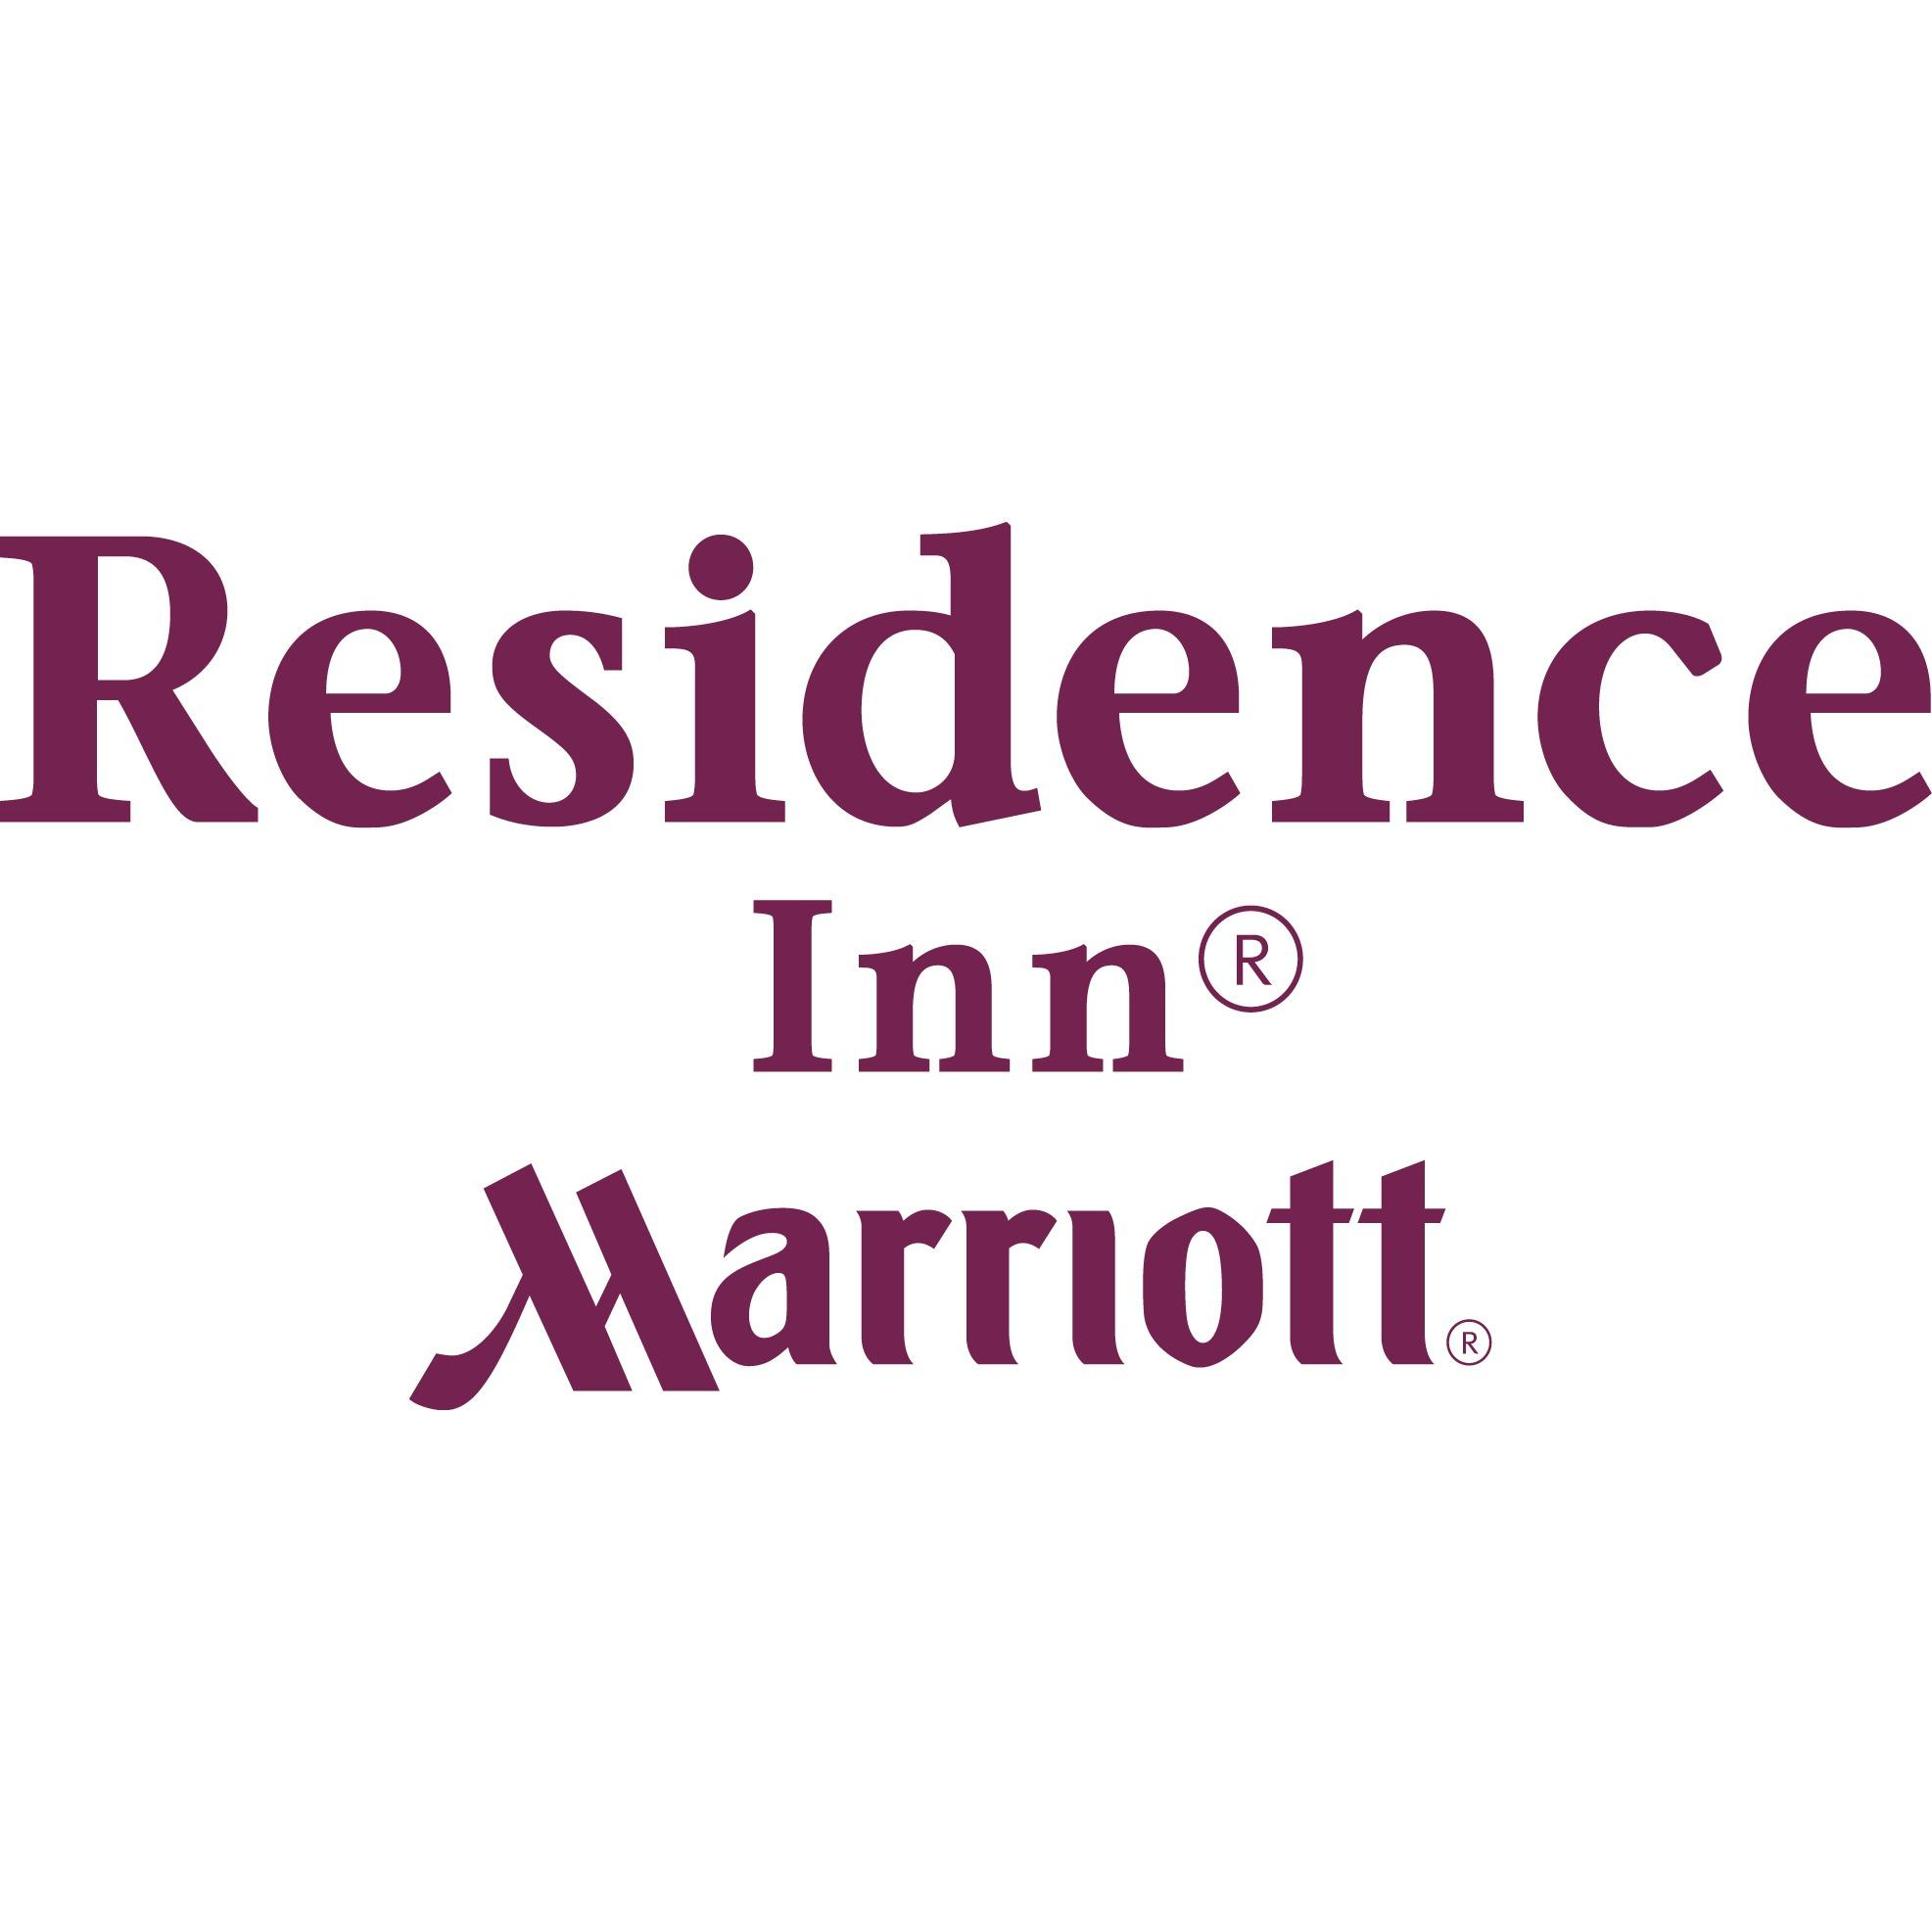 Residence Inn by Marriott Paducah - Paducah, KY - Hotels & Motels